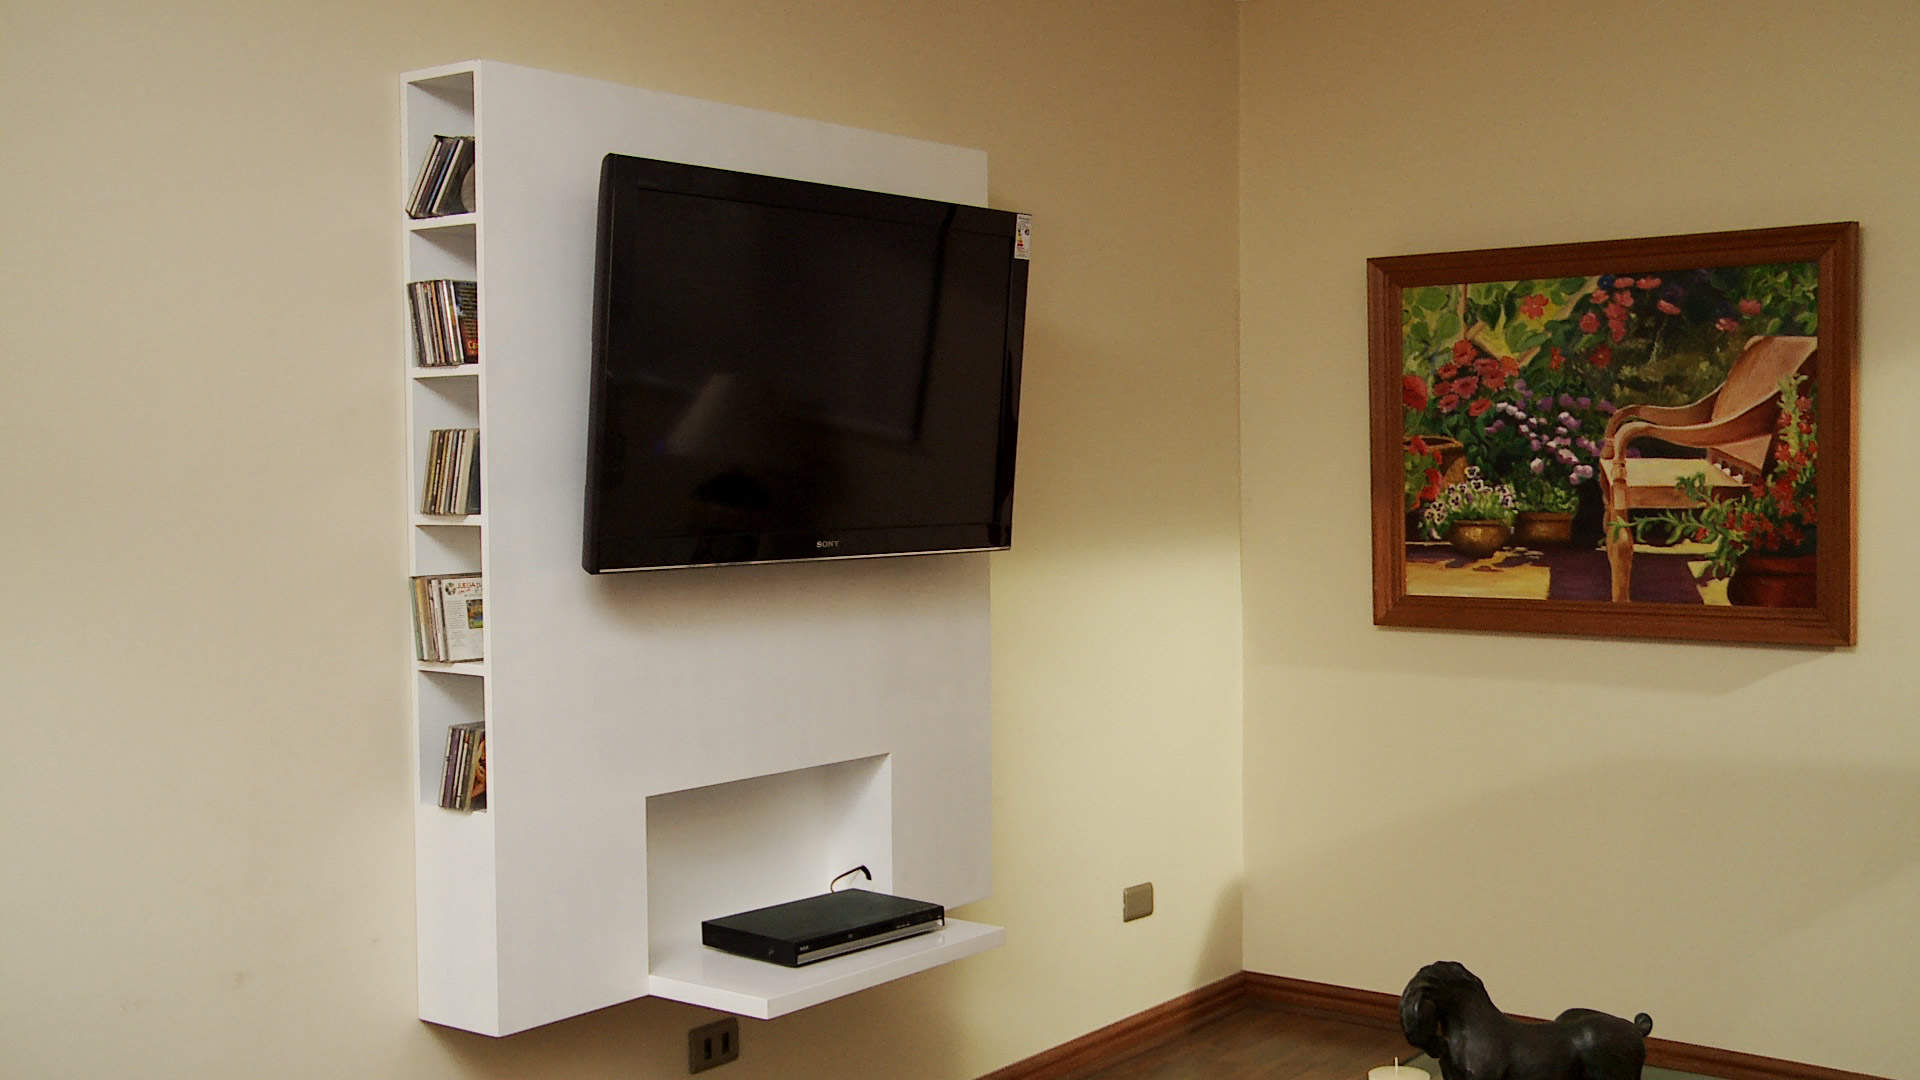 Colgar la tele en la pared rack soporte para tv de pared - Como colgar una tele en la pared ...